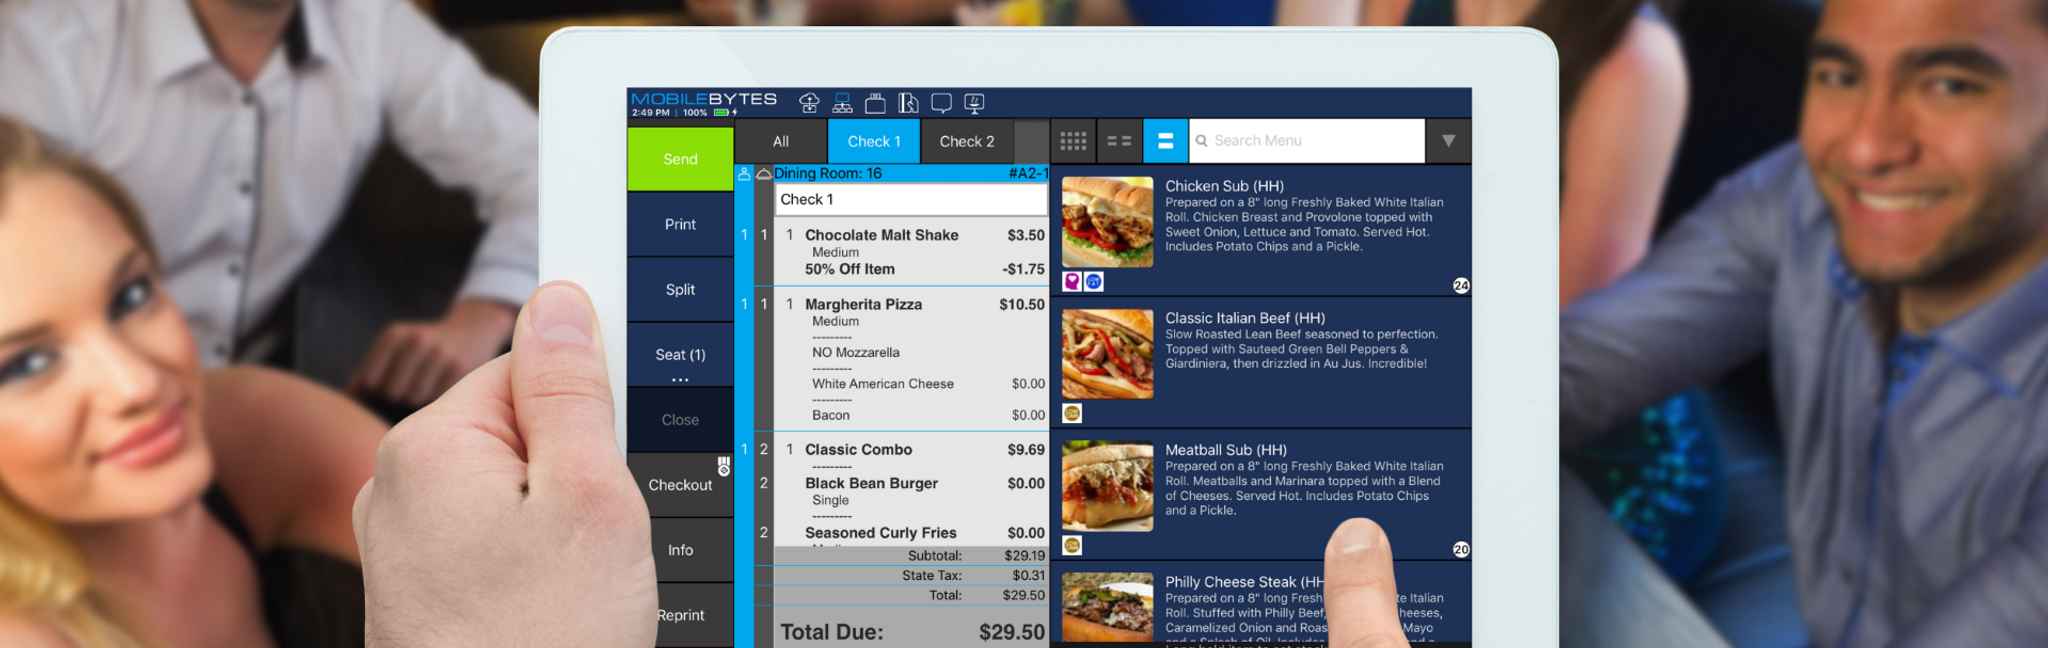 tableside-ordering-2048x648.png